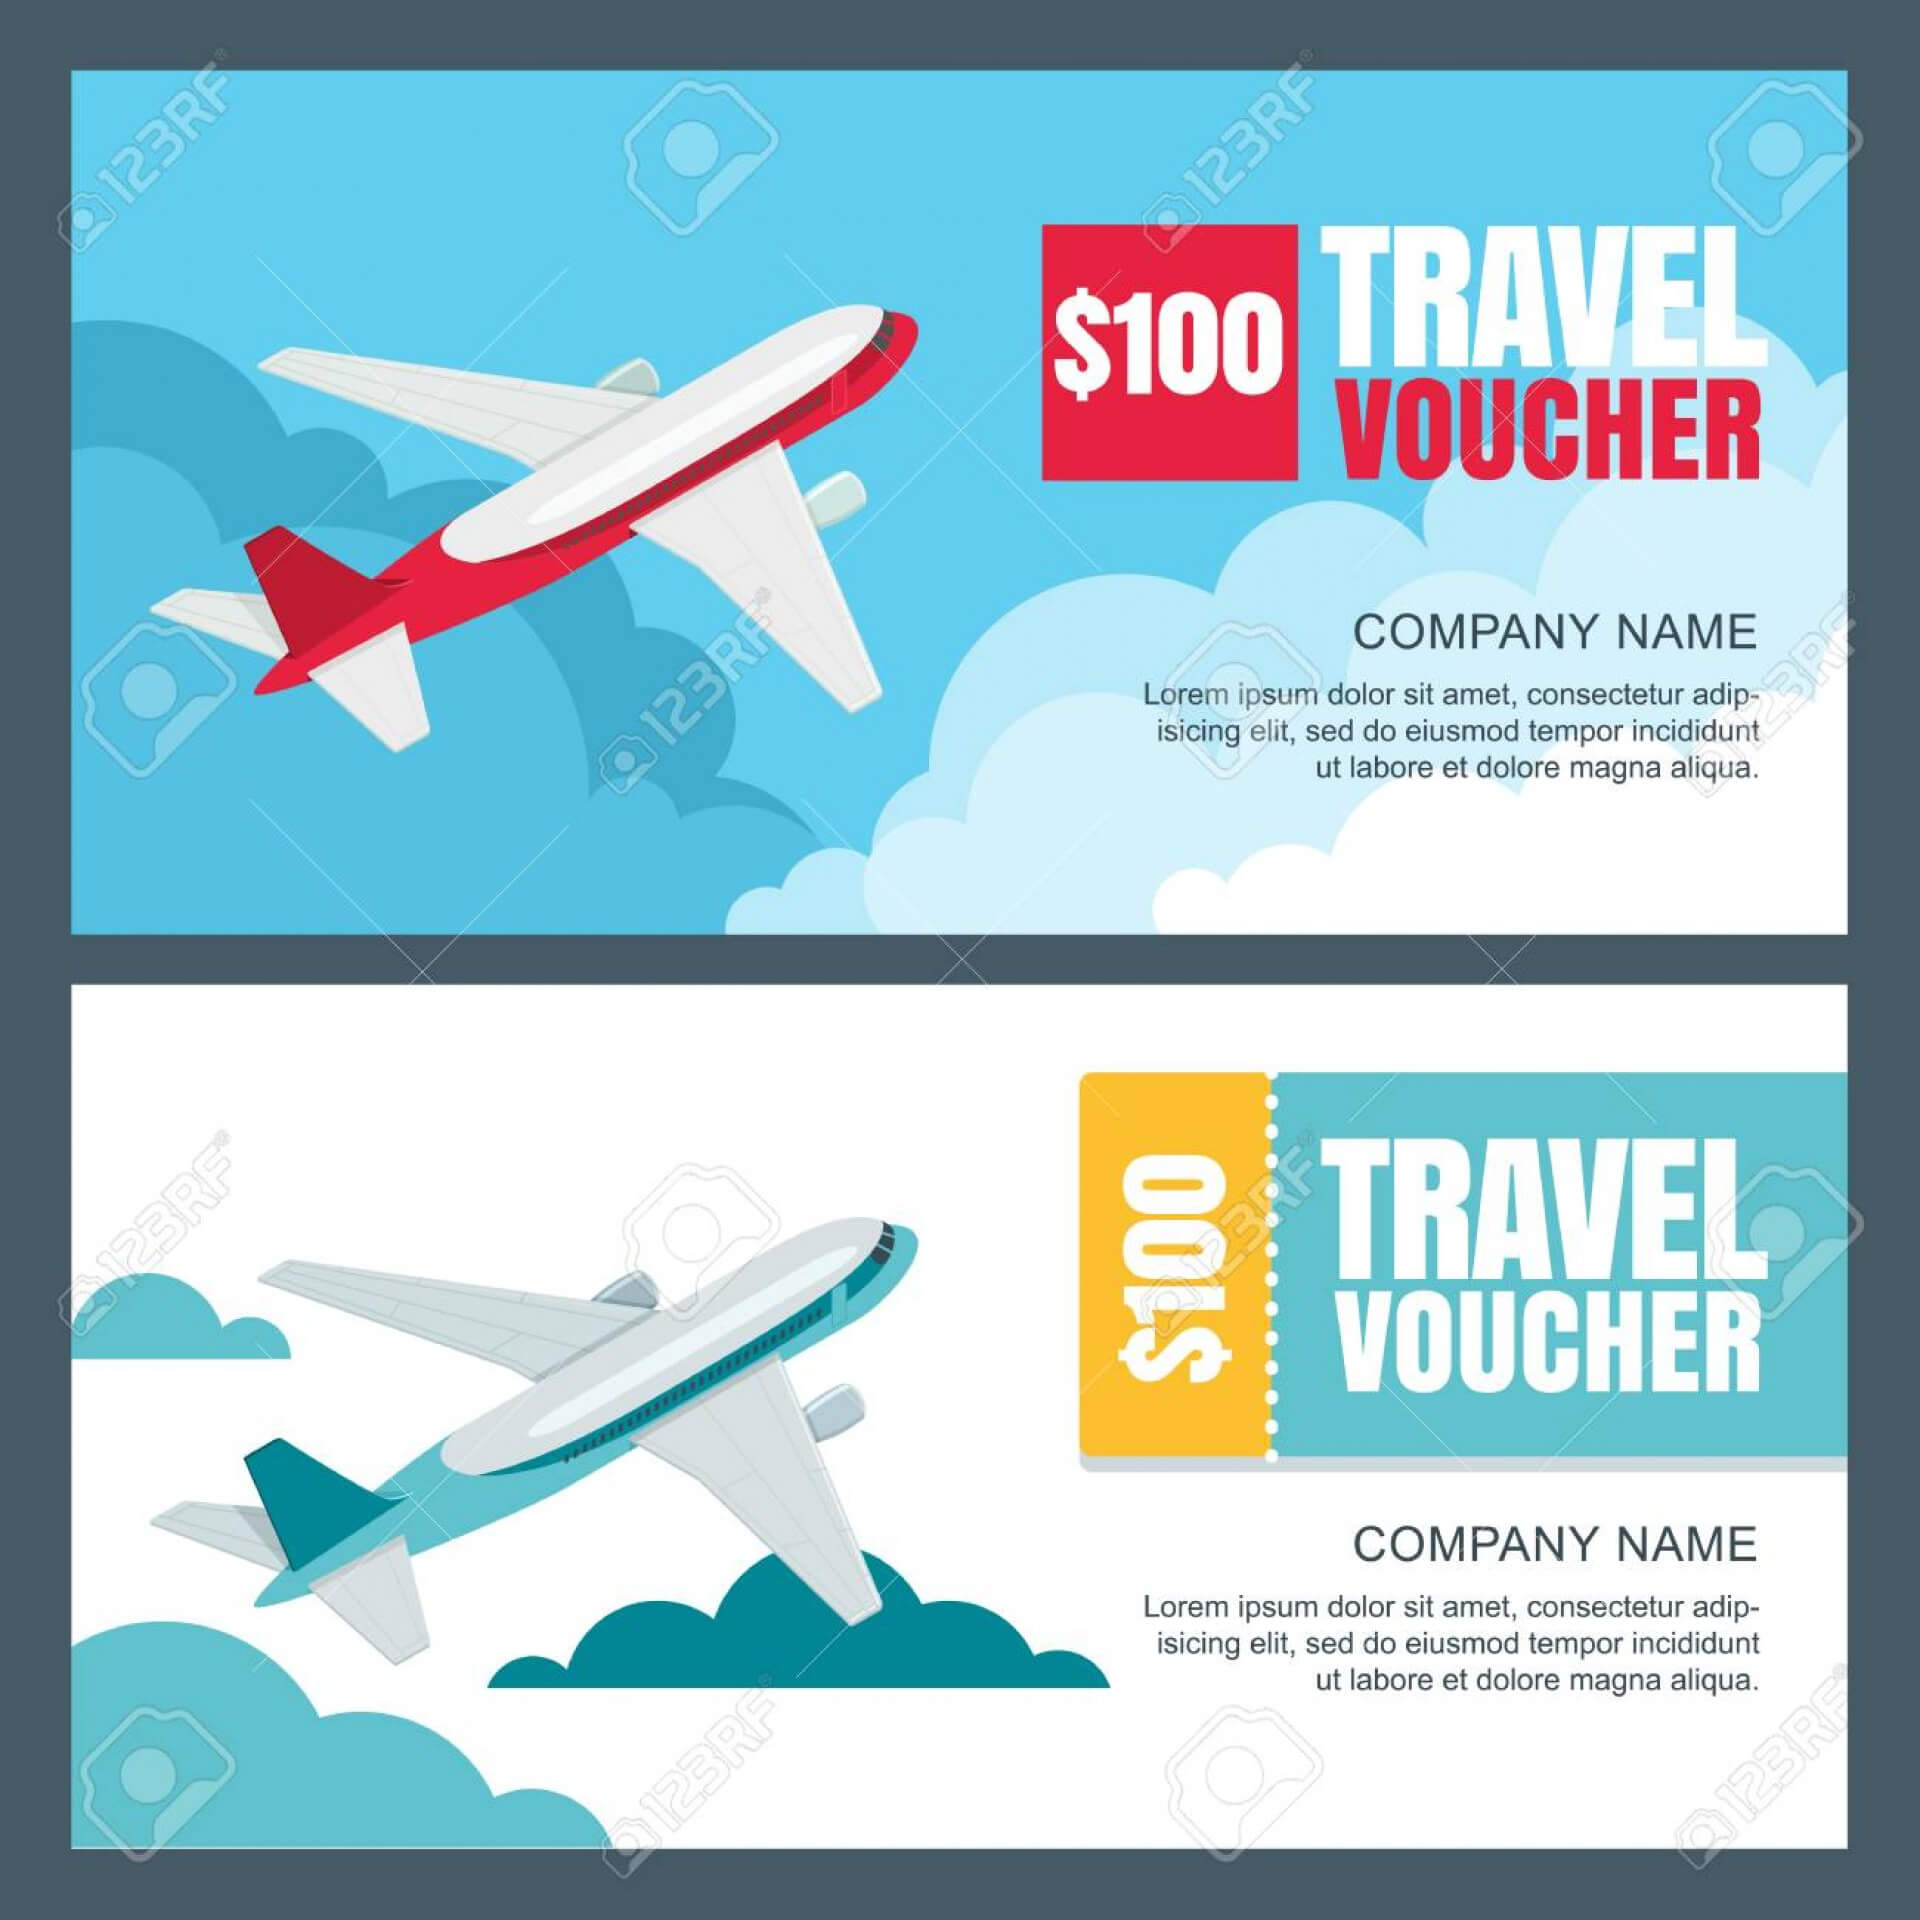 032 Template Ideas Travel Gift Certificate Stirring Voucher intended for Free Travel Gift Certificate Template